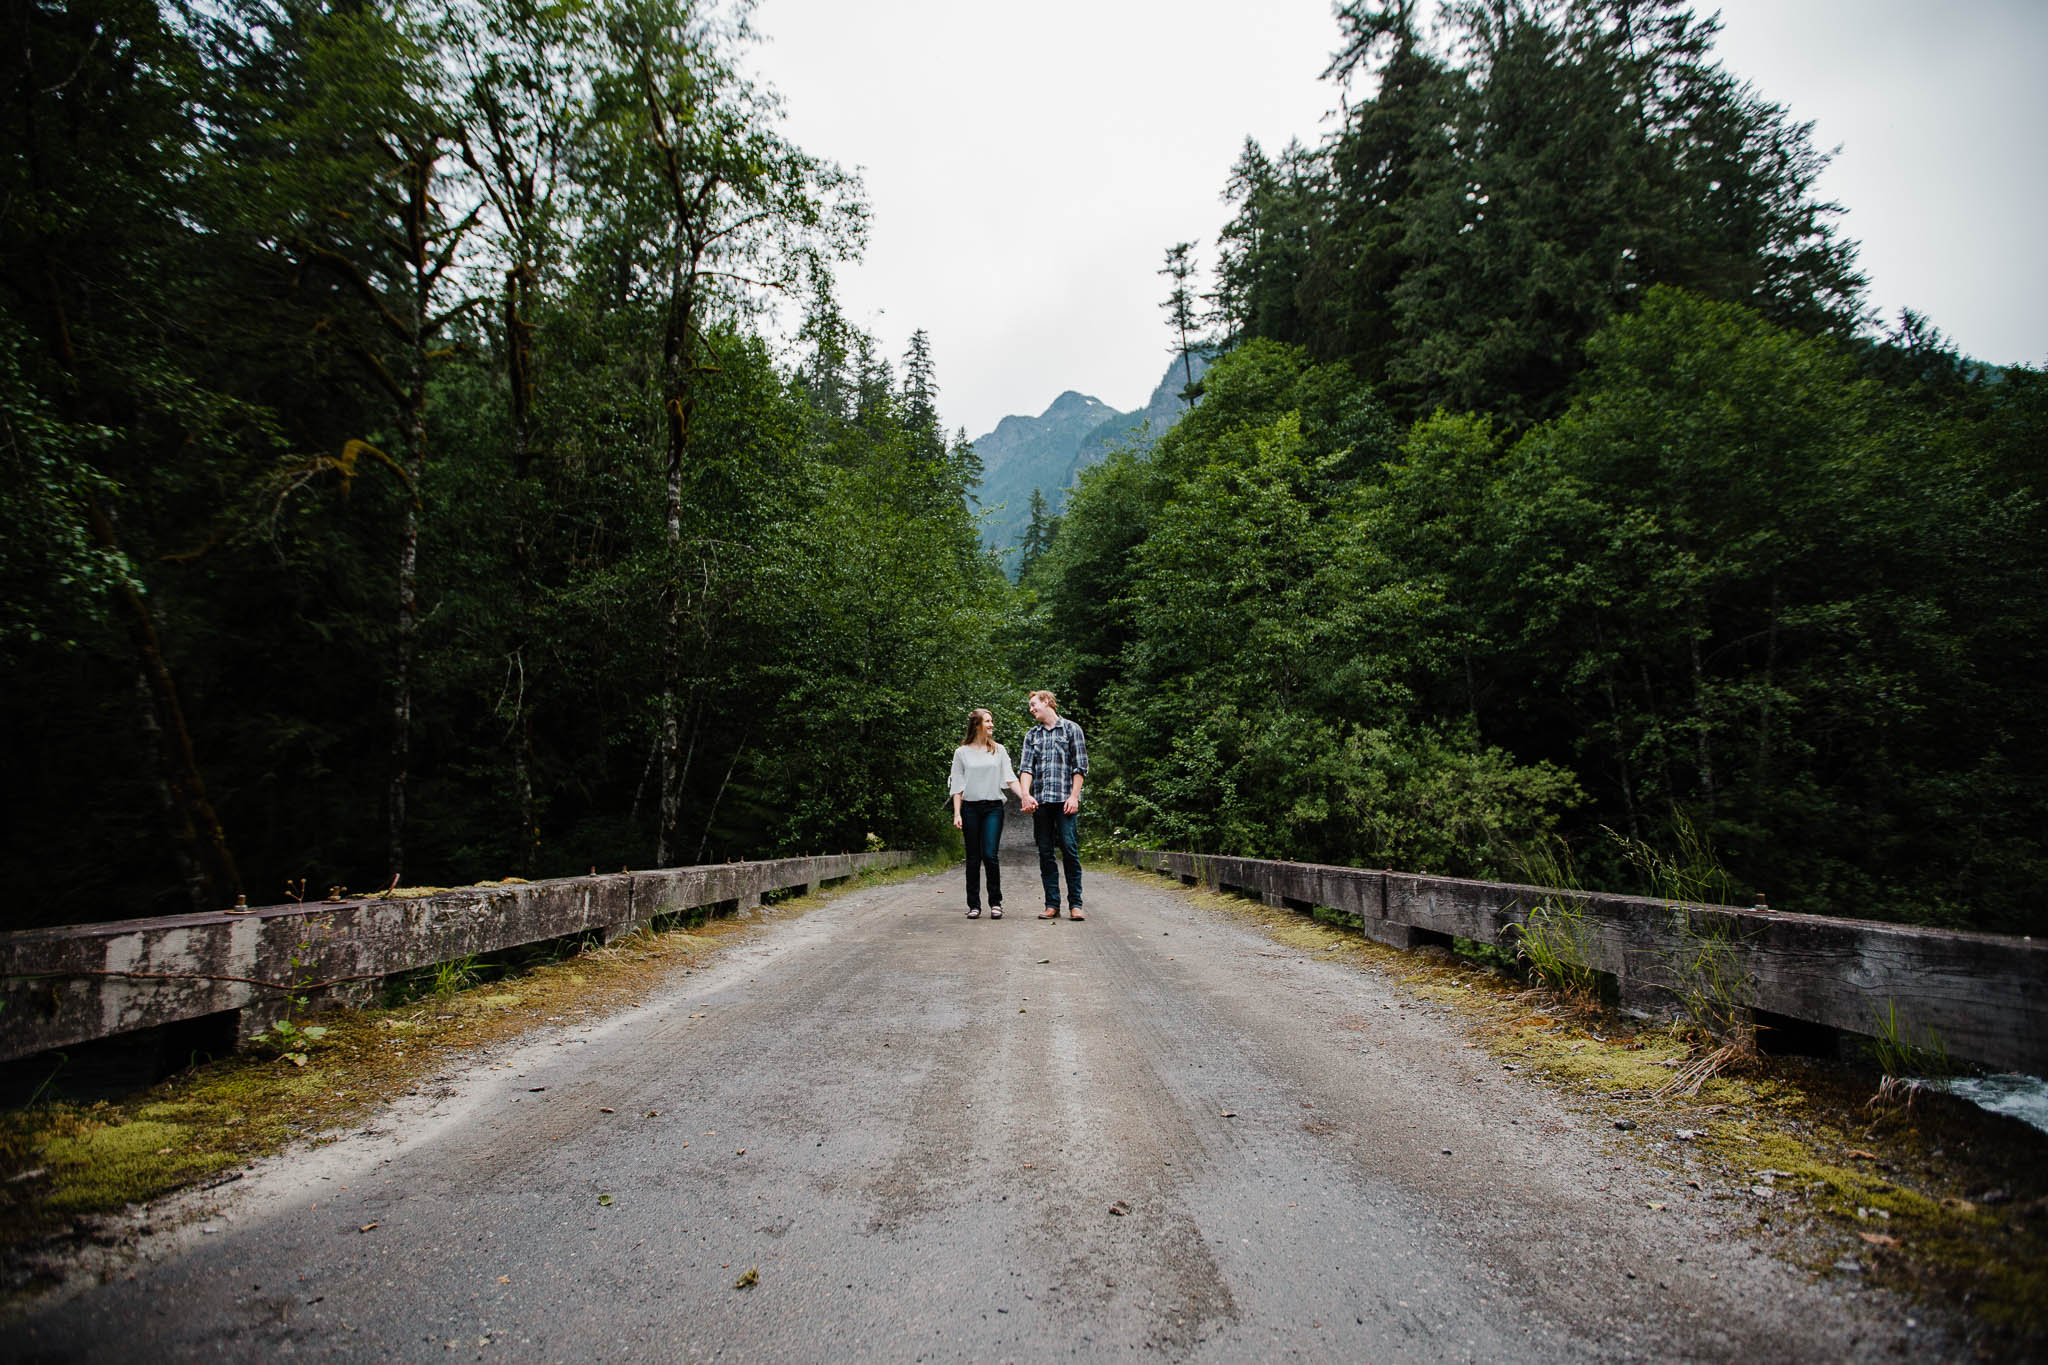 Couple standing on old service road bridge  by   Folley Creek near Folley Lake along Folley Service Road in Chilliwack British Columbia during outdoor engagement photography session in the mountains with Mimsical Photography.    Outdoor adventure photographer based in Langley, British Columbia. Real fun engagement photos for outdoor enthusiasts in the lower mainland. romantic pictures of couple